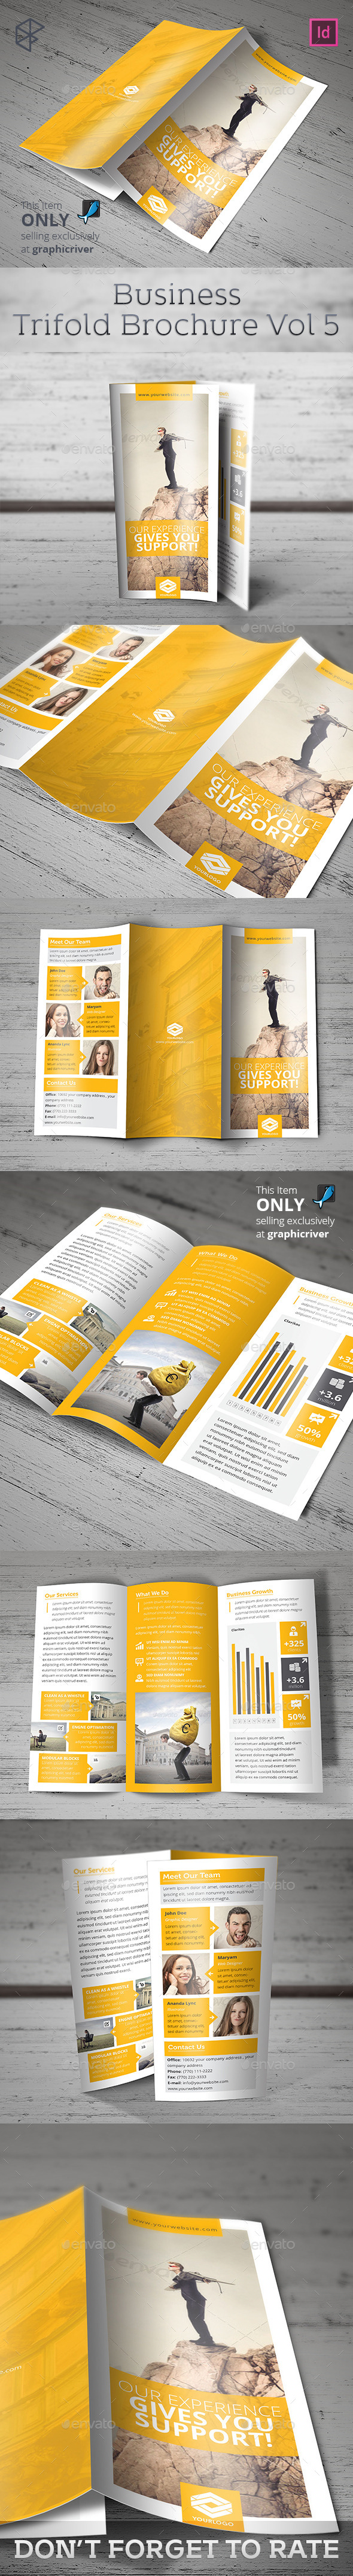 Business Trifold Brochure Vol 5 - Corporate Brochures